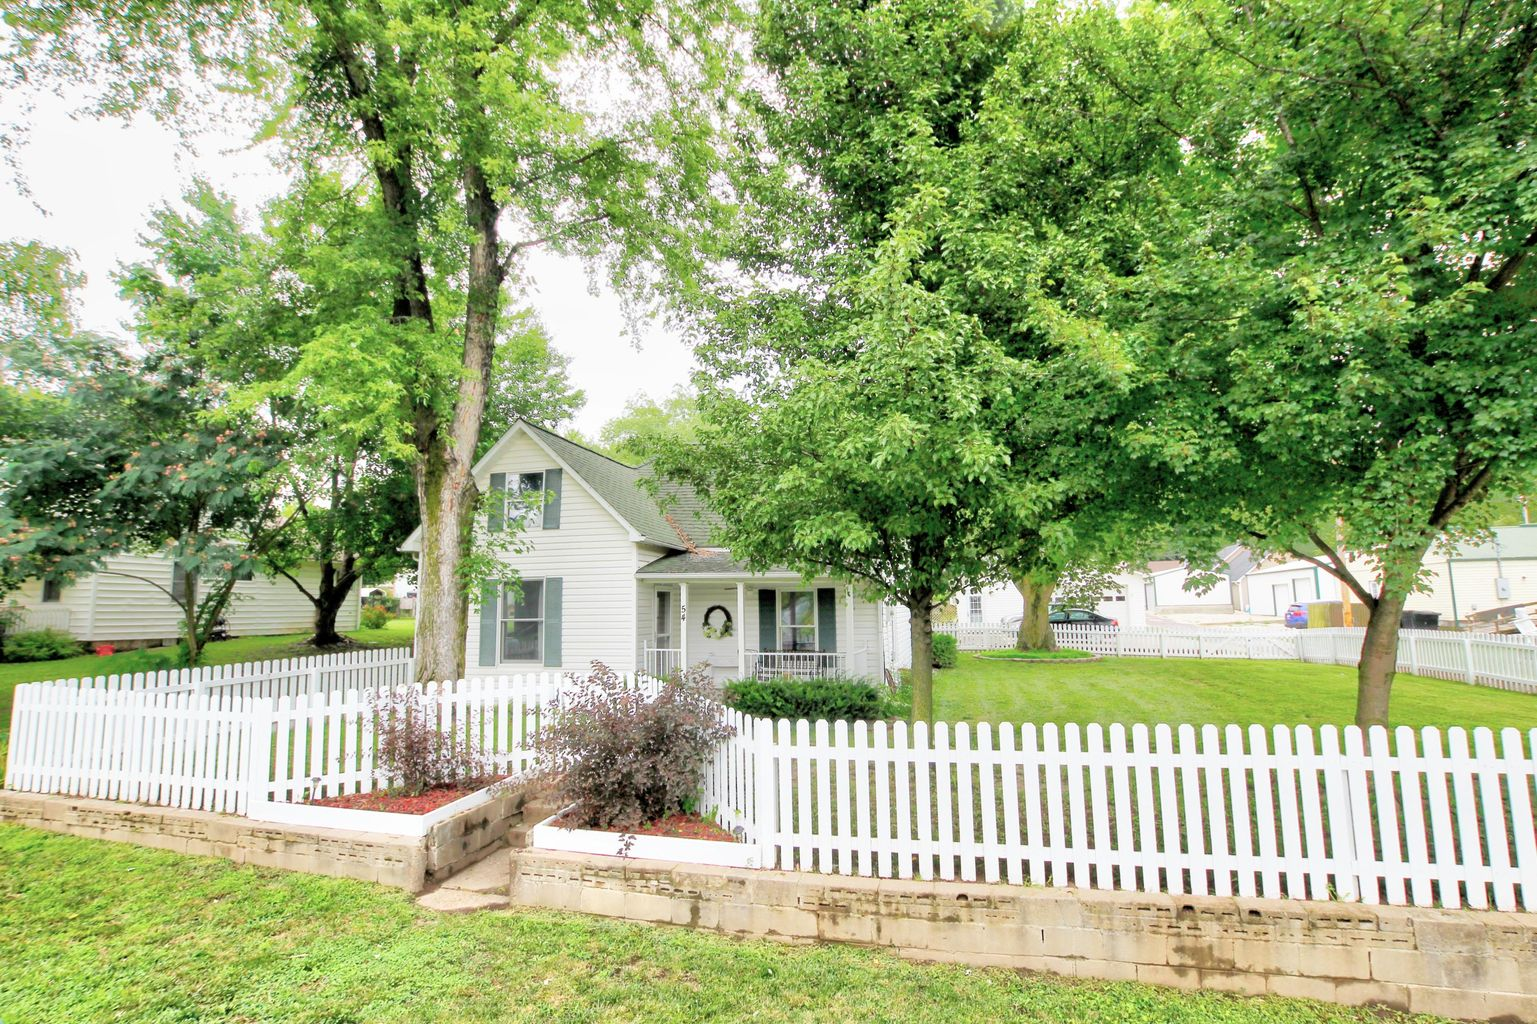 54 W N CENTER ST., HARTSBURG, MO 65039